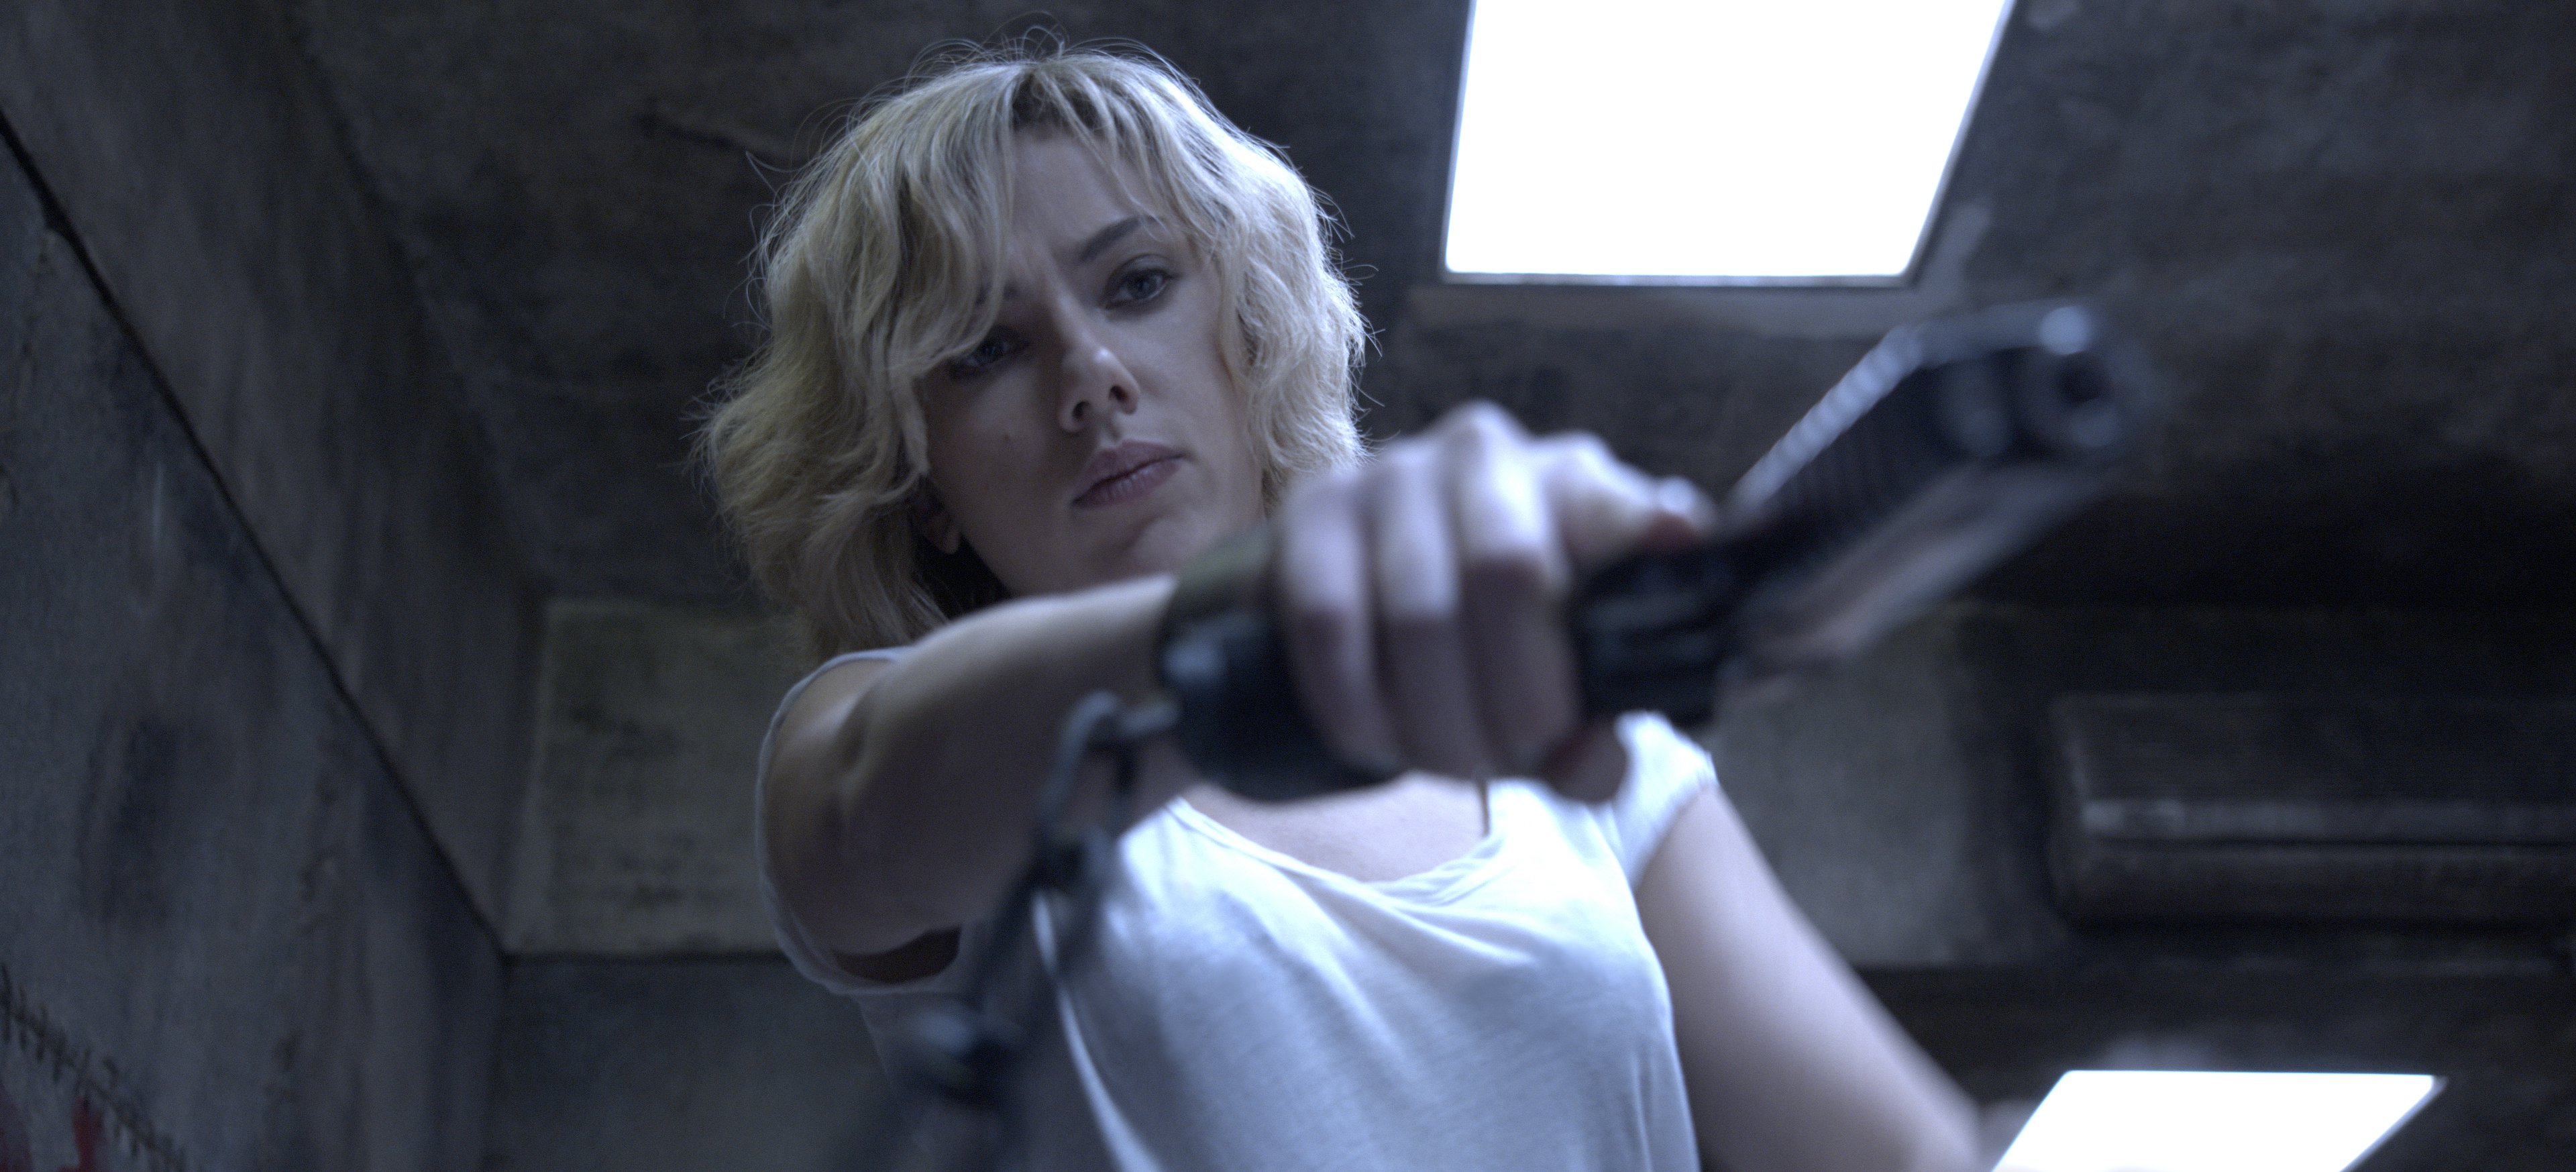 Writer/director Luc Besson directs SCARLETT JOHANSSON in ?Lucy?, an action-thriller that examines the possibility of what one human could truly do if she unlocked 100 percent of her brain capacity and accessed the furthest reaches of her mind.